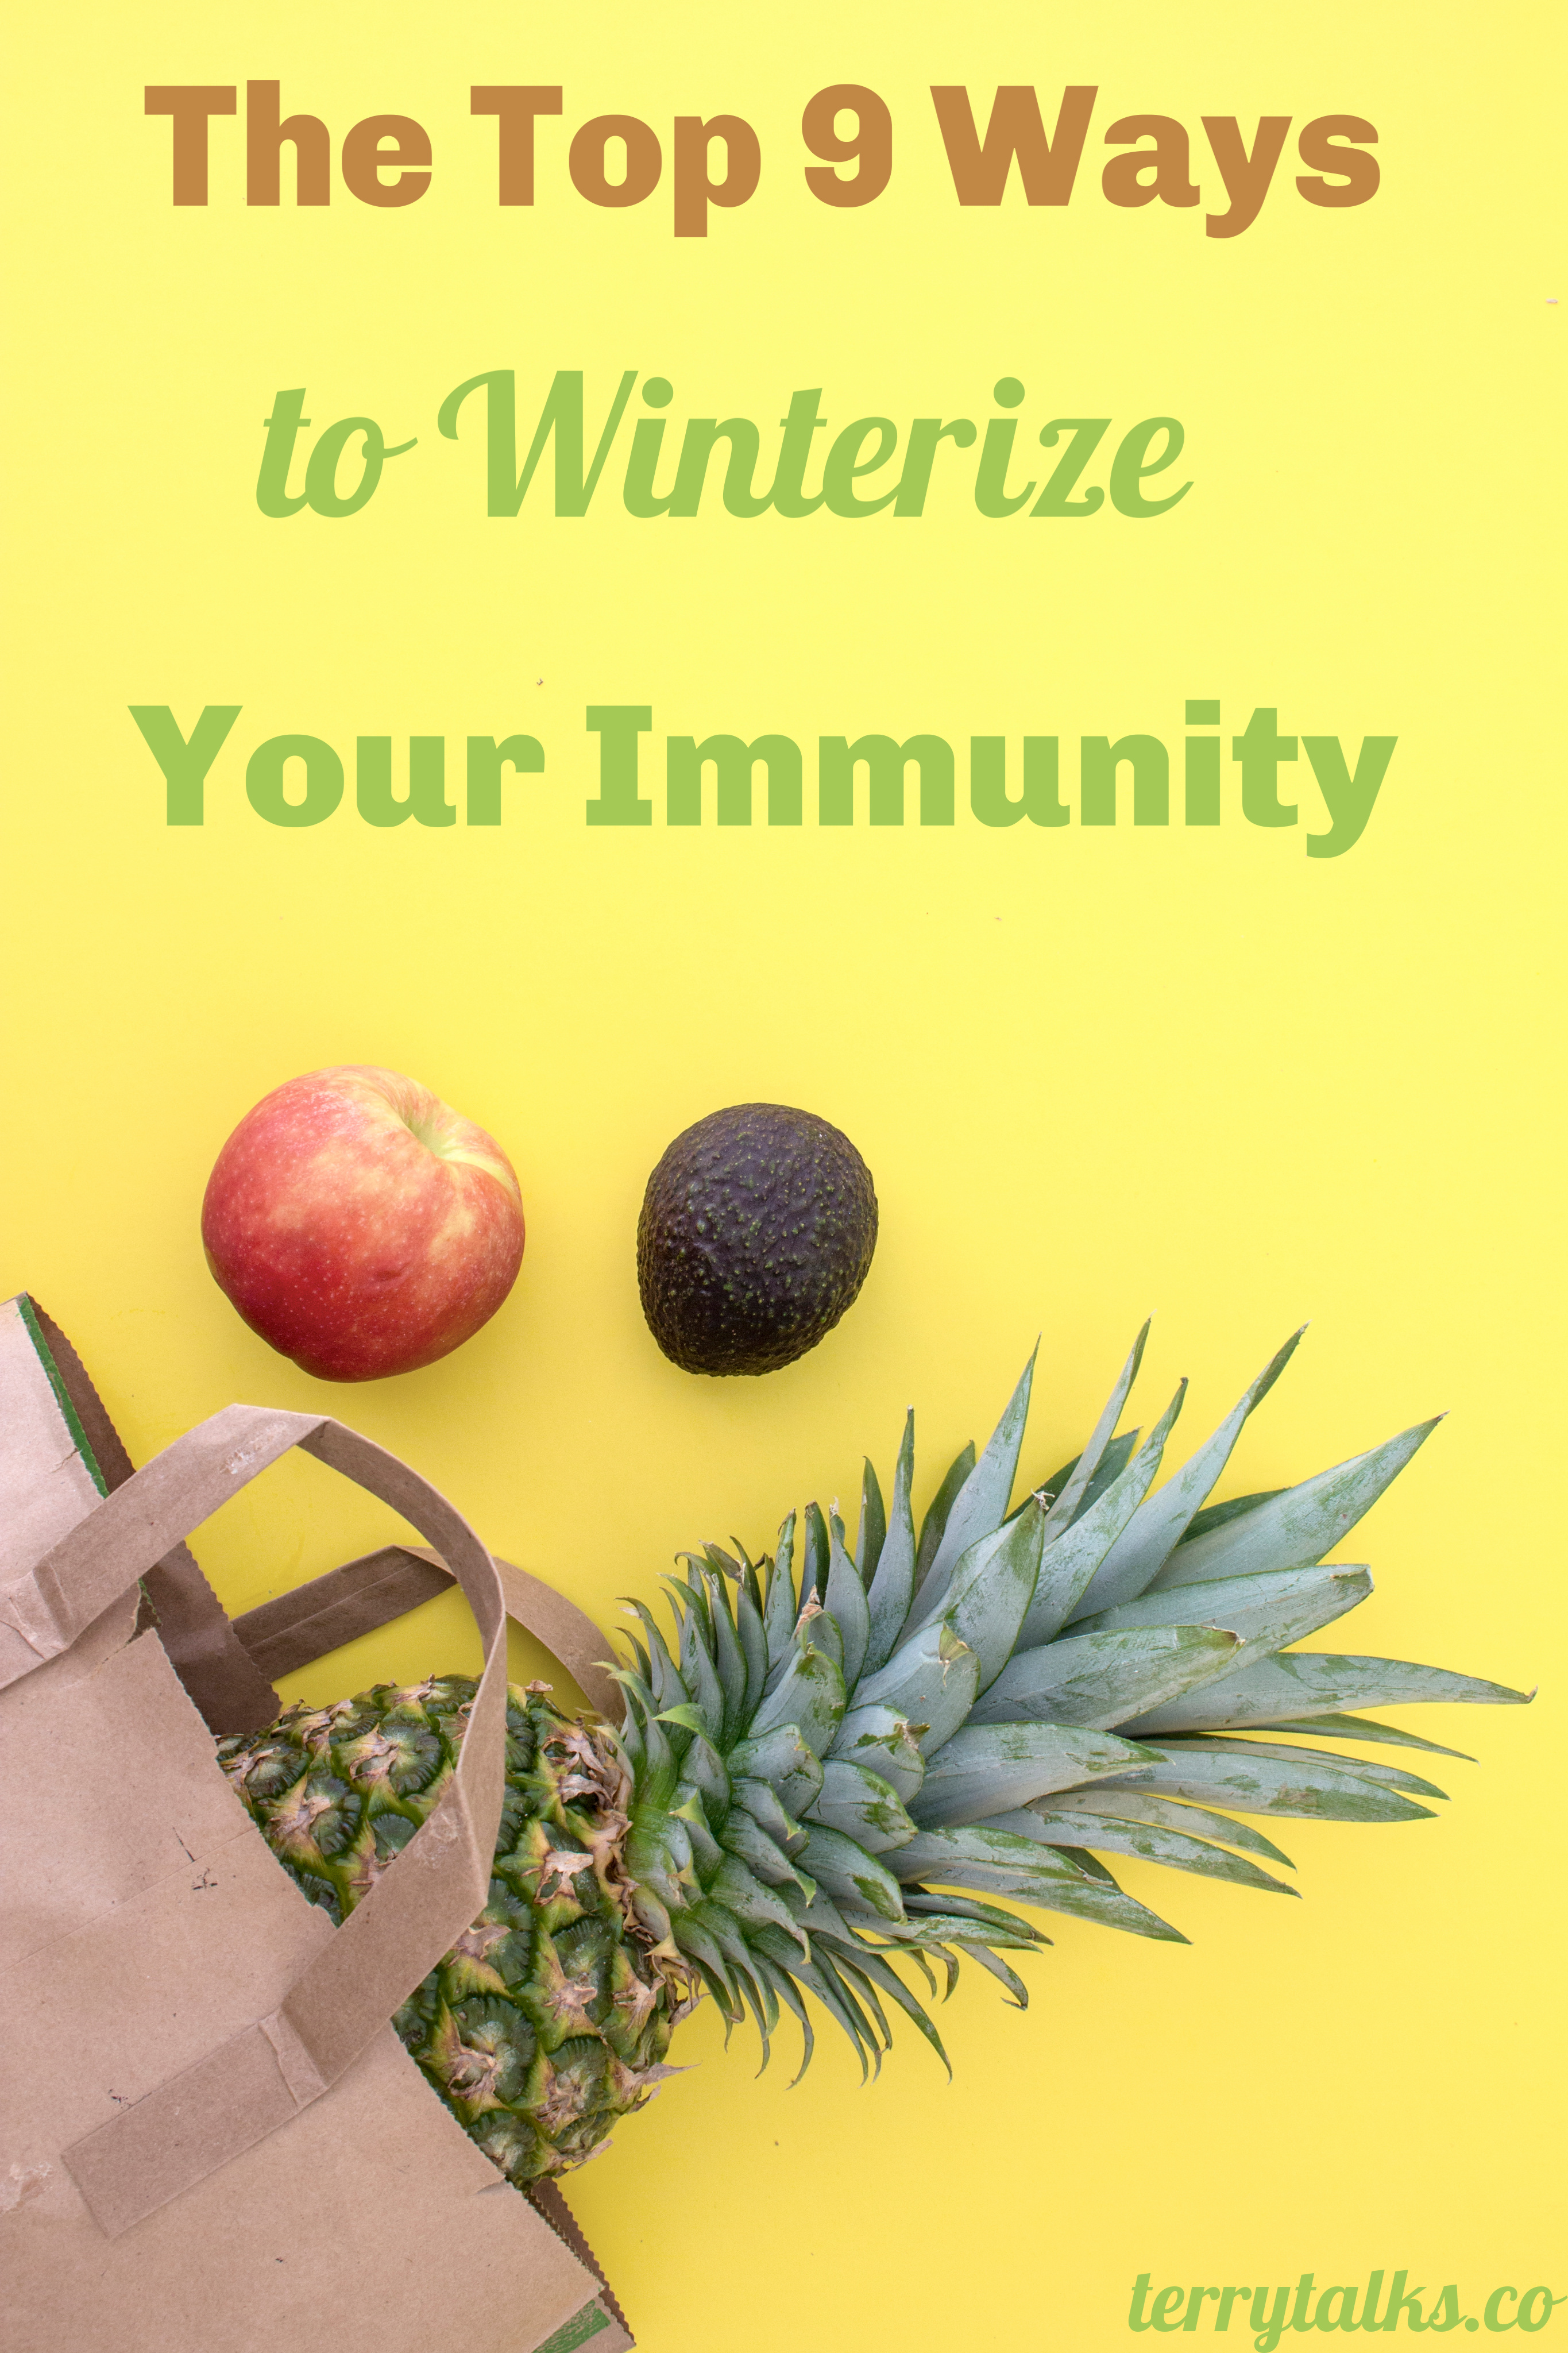 Top 9 Ways to Winterize Your Immunity